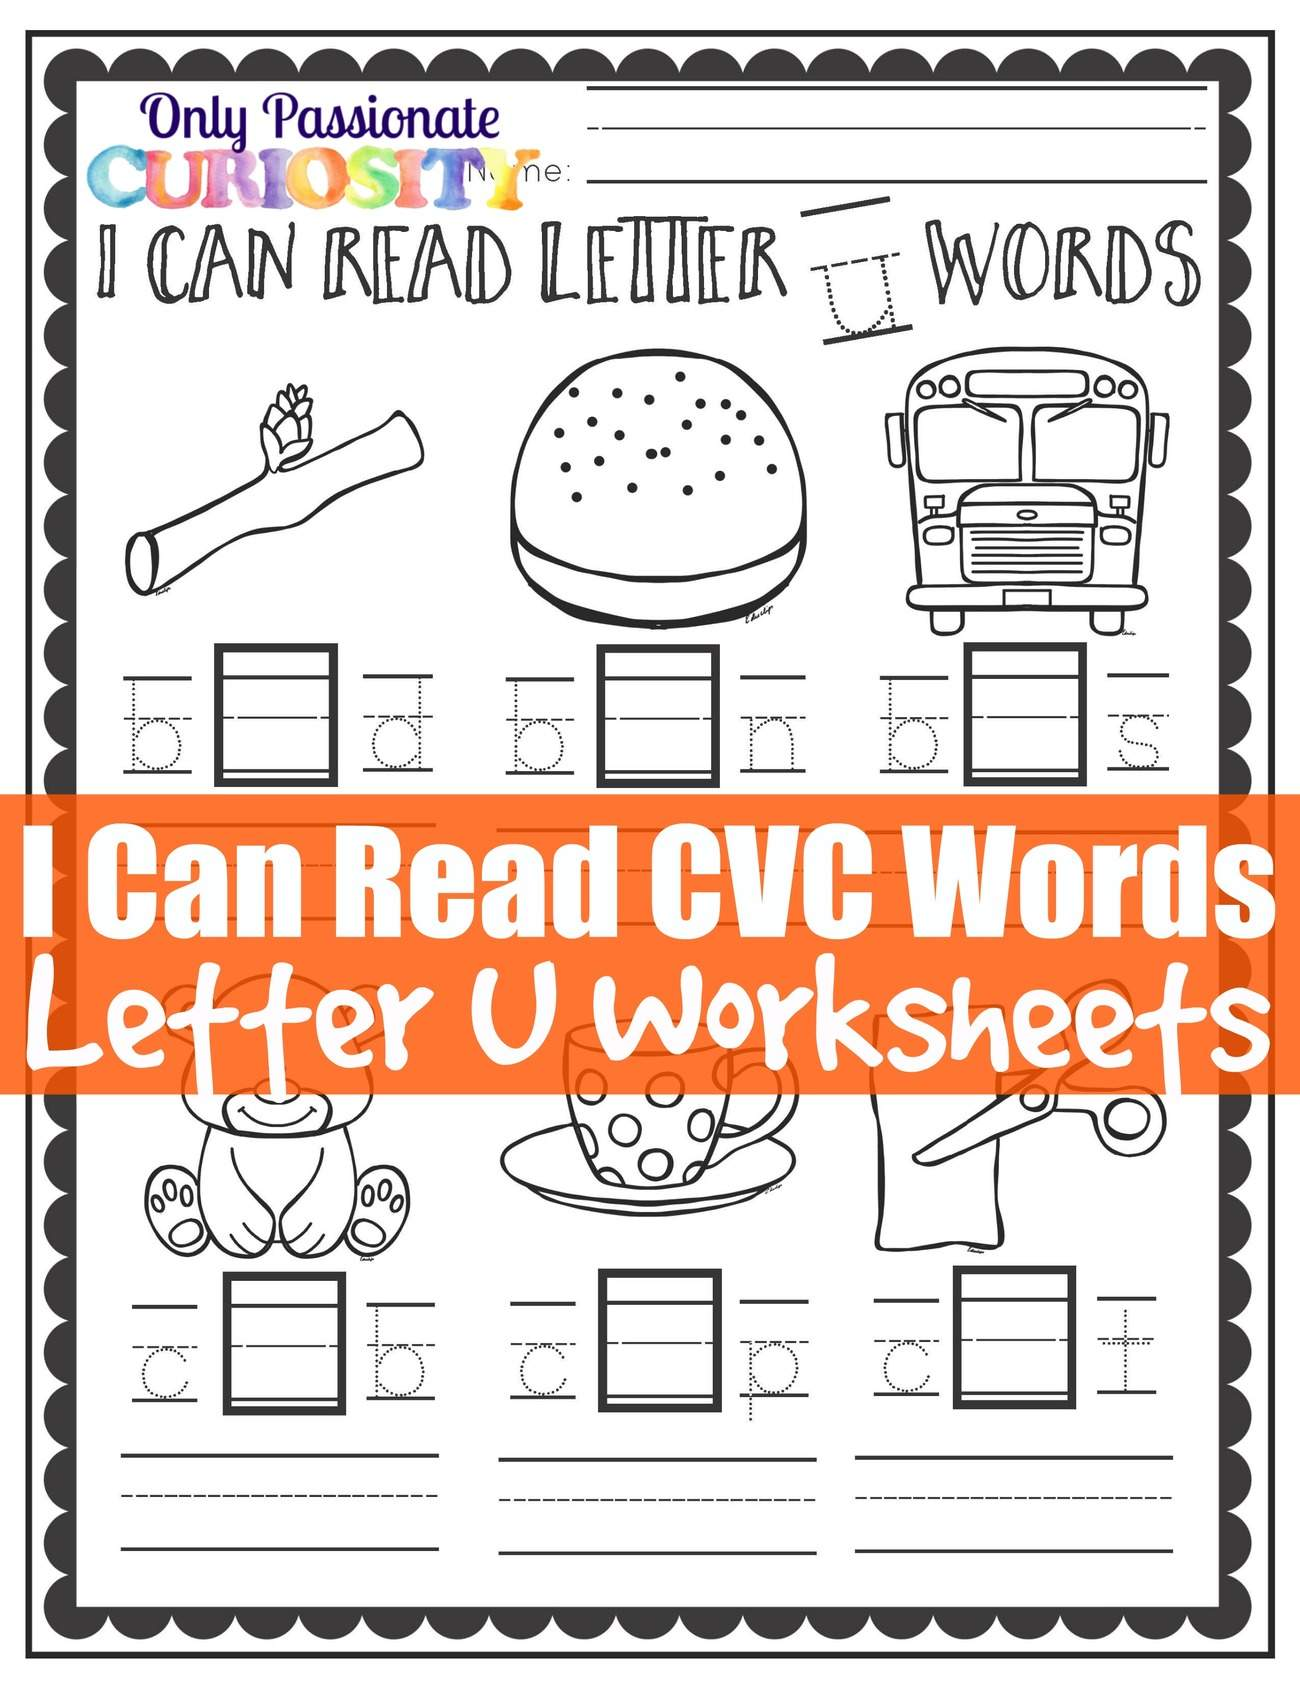 I Can Read CVC Words Middle U Worksheets – ly Passionate Curiosity